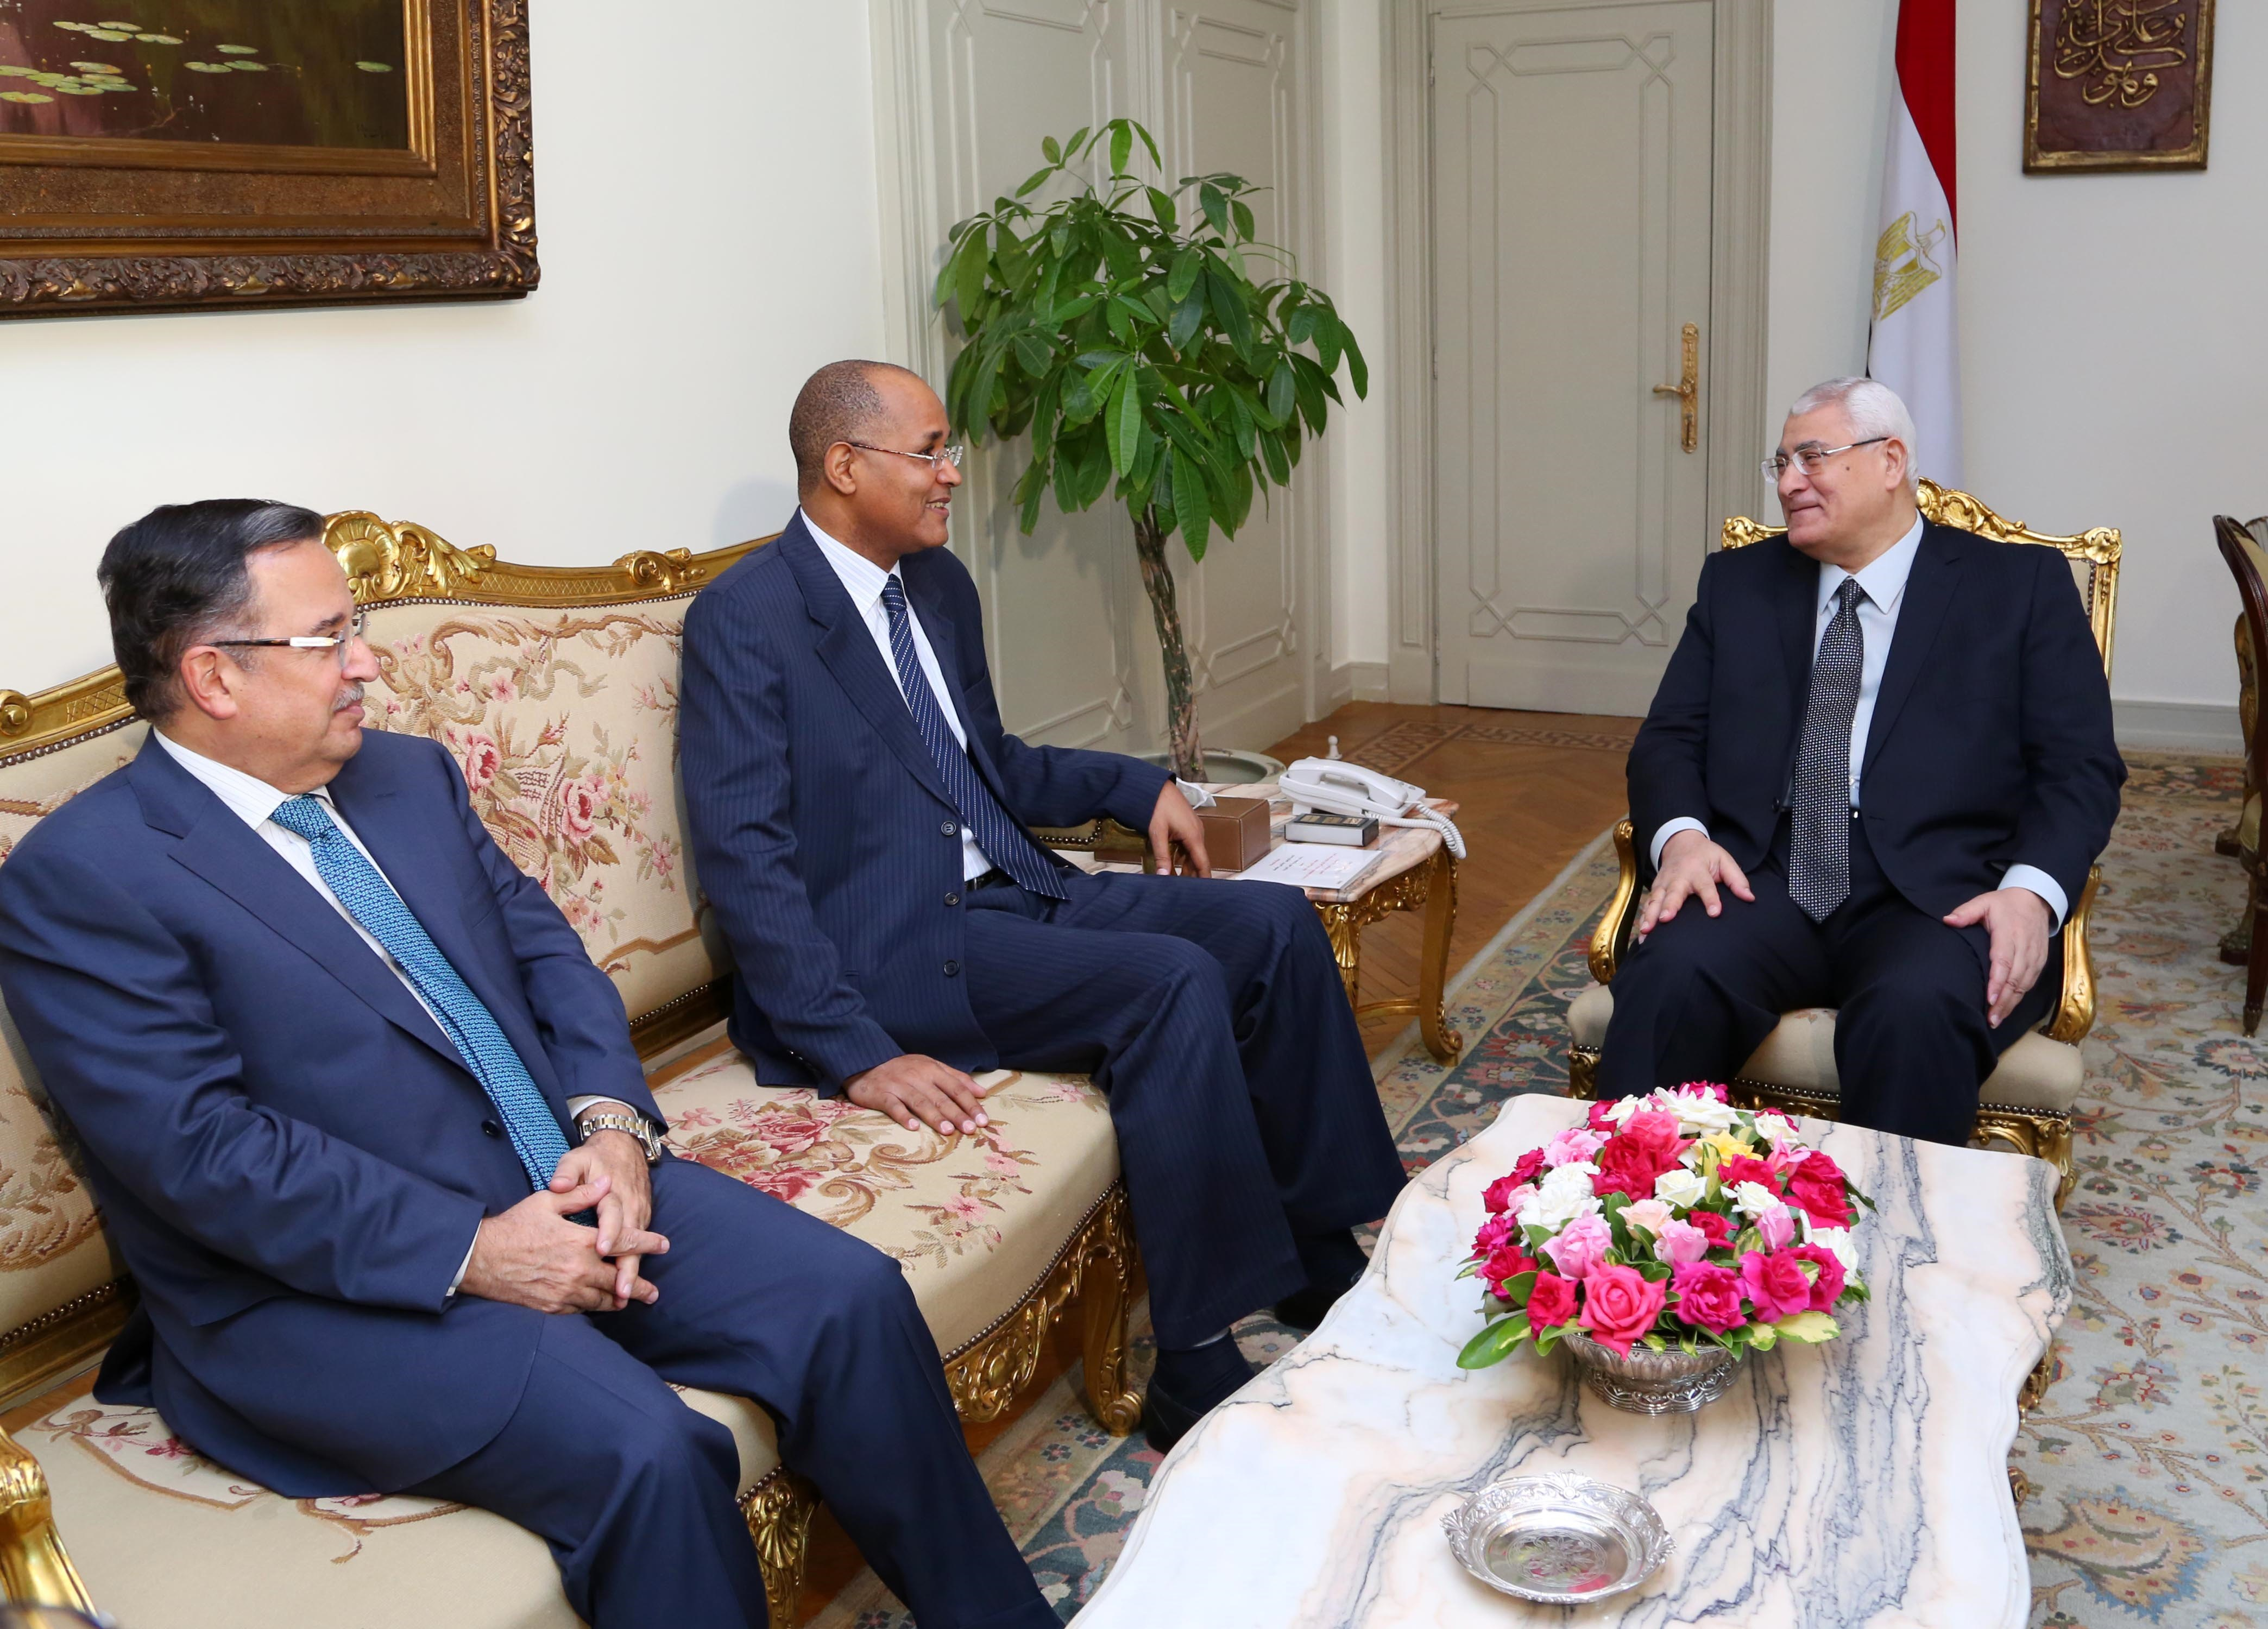 In this handout picture taken and released by the Egyptian Presidency,  Egypt's interim president Adly Mansour (R) and his Foreign minister Nabil Fahmy (L) meet with African Union election monitor Mauritanian, Mohamed Lamine Ould Akec (C) in Cairo on May 25, 2014.  Egyptians will vote on May 26 and May 27 in a presidential election and Army chief Abdel Fattah al-Sisi , who overthrew President Mohamed Morsi 11 months ago, is seen by many as the front runner.   (AFP PHOTO/ Egyptian Presidency)